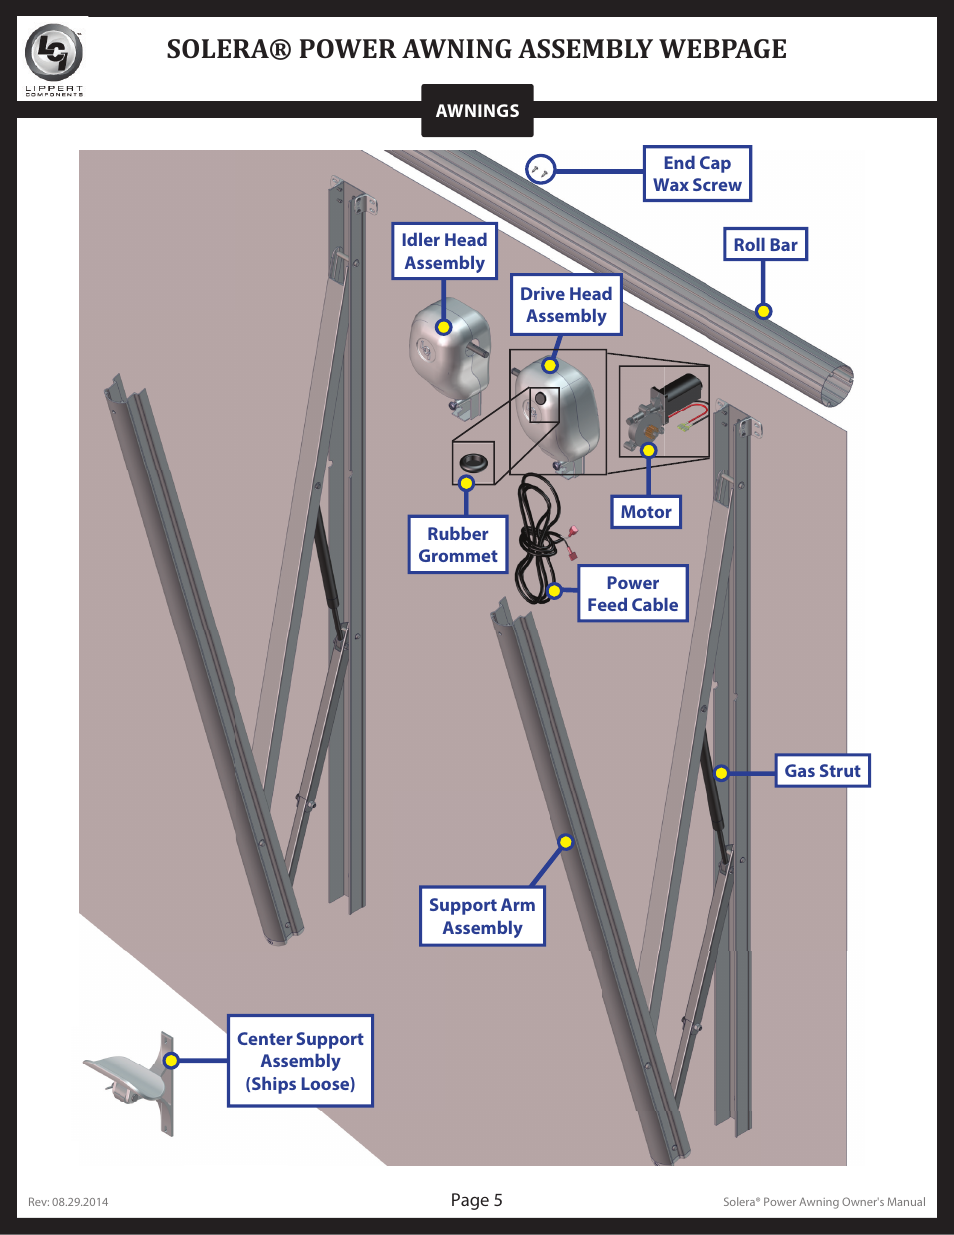 Solera 174 Power Awning Assembly Webpage Lippert Components